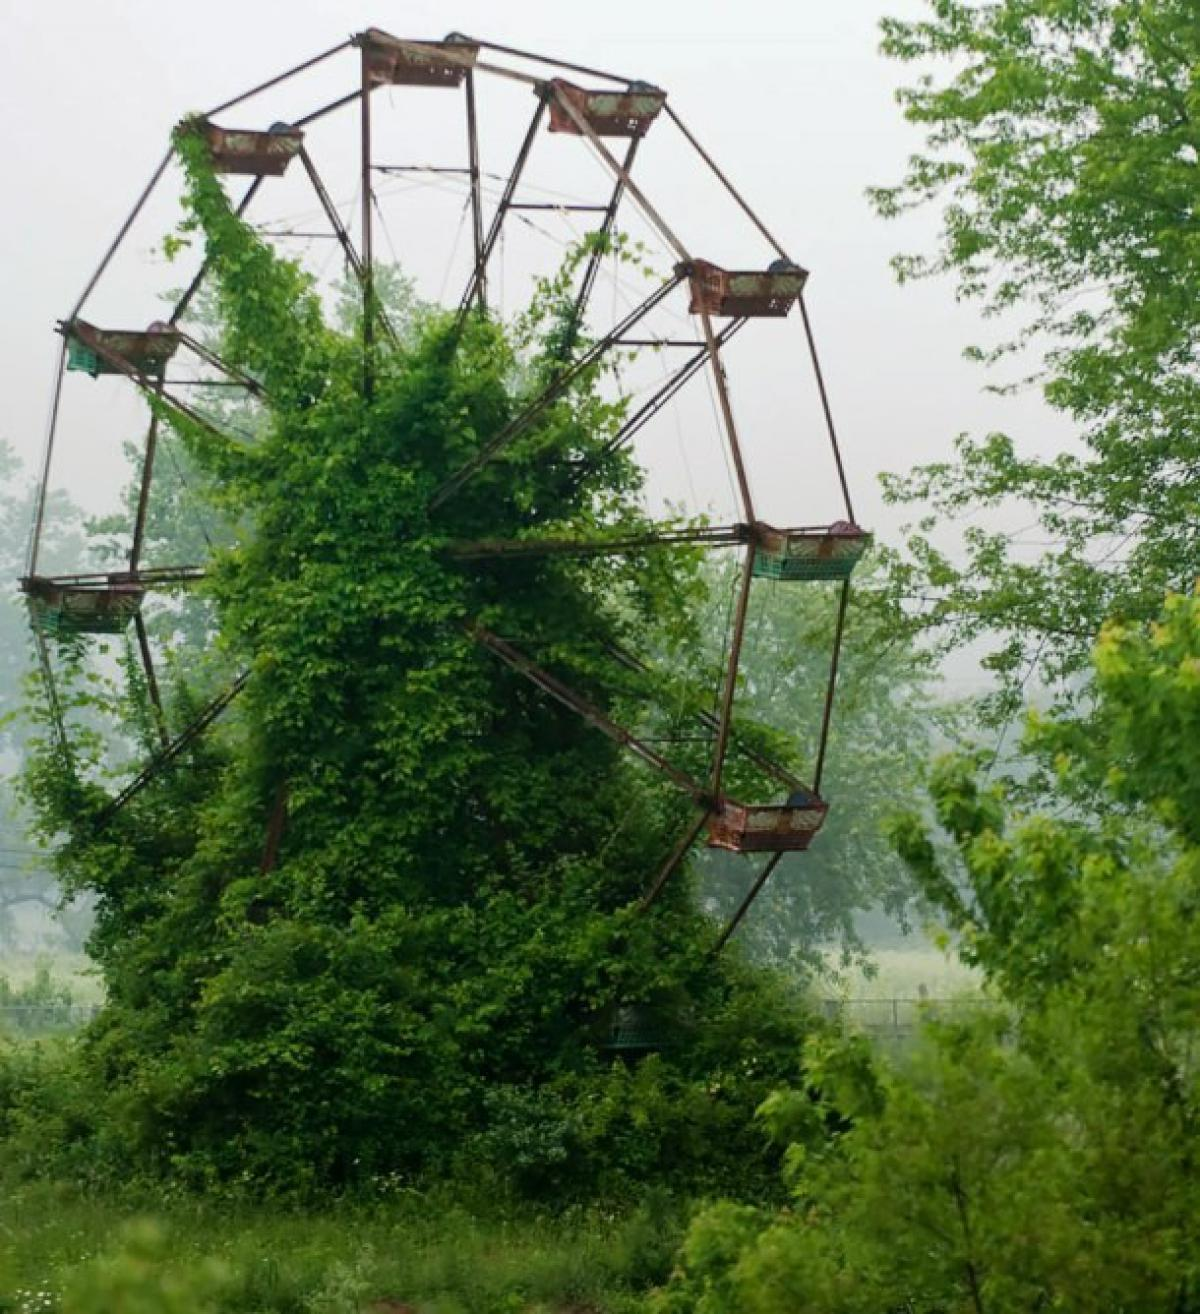 designbump-com-nature-reclaiming-abandoned-places-